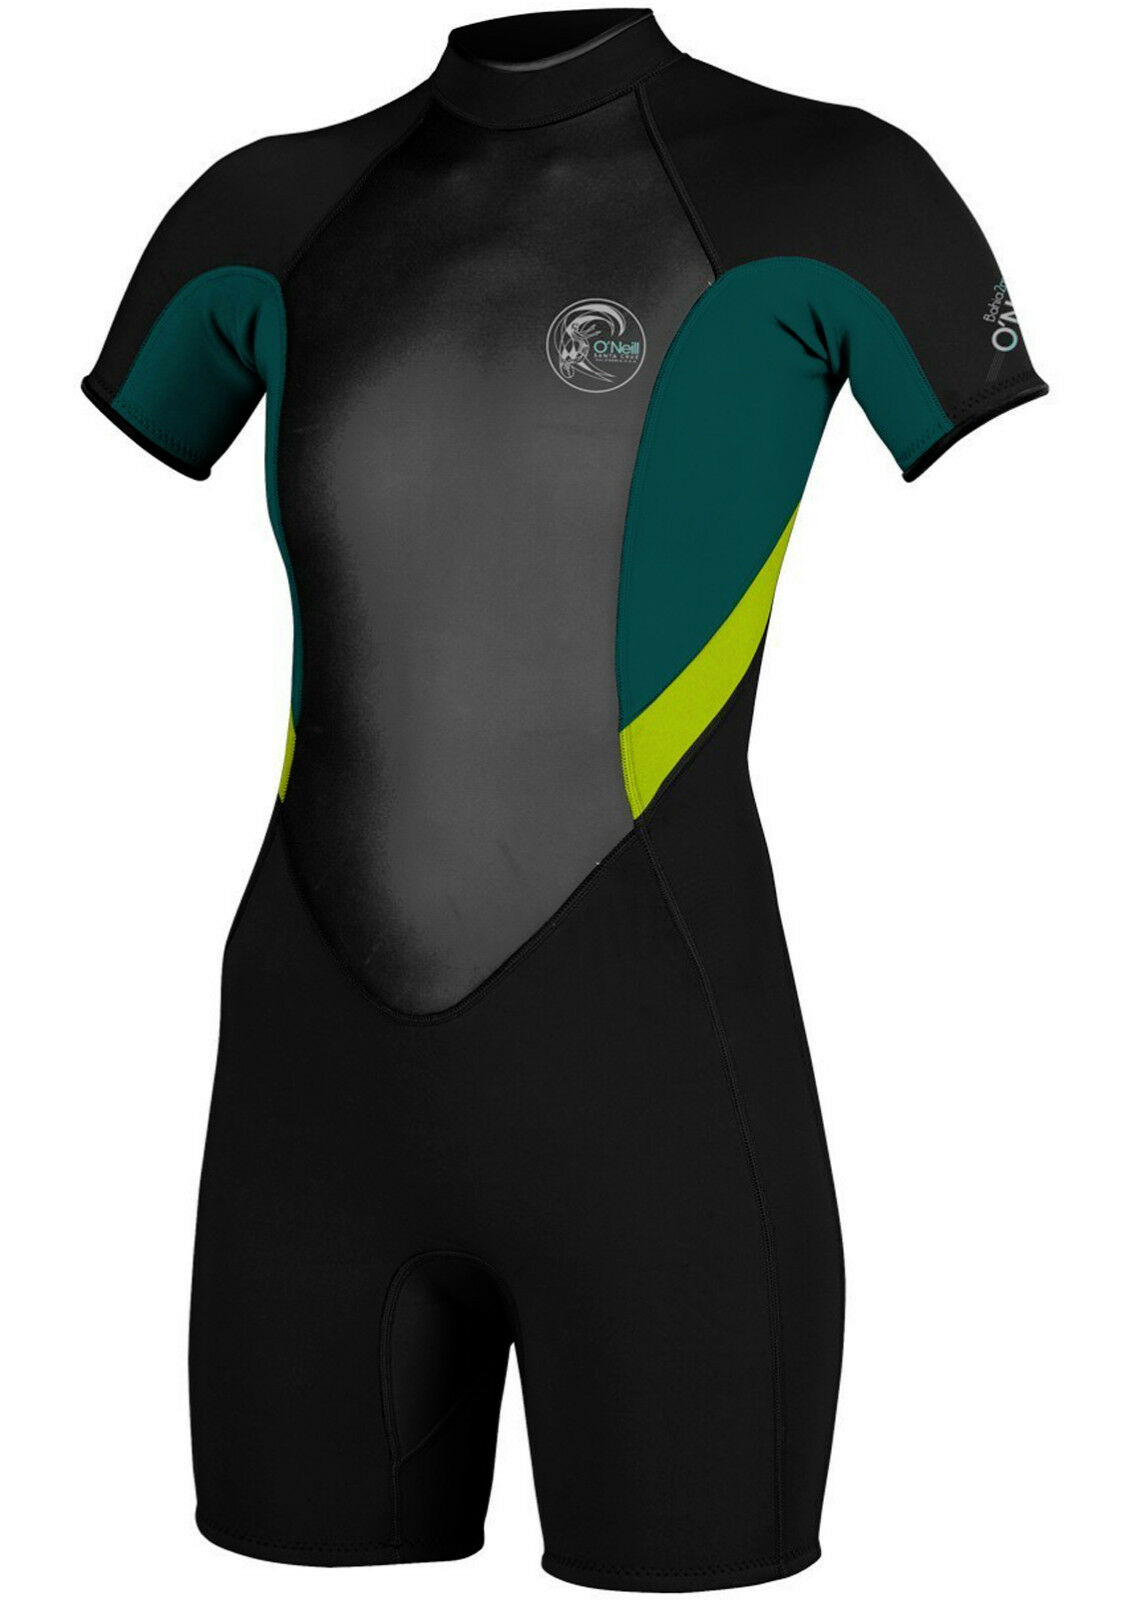 O'NEILL Women's 2mm BAHIA S S Spring  Suit - BLK DPTEAL LIME - Size 4 - NWT  offering 100%